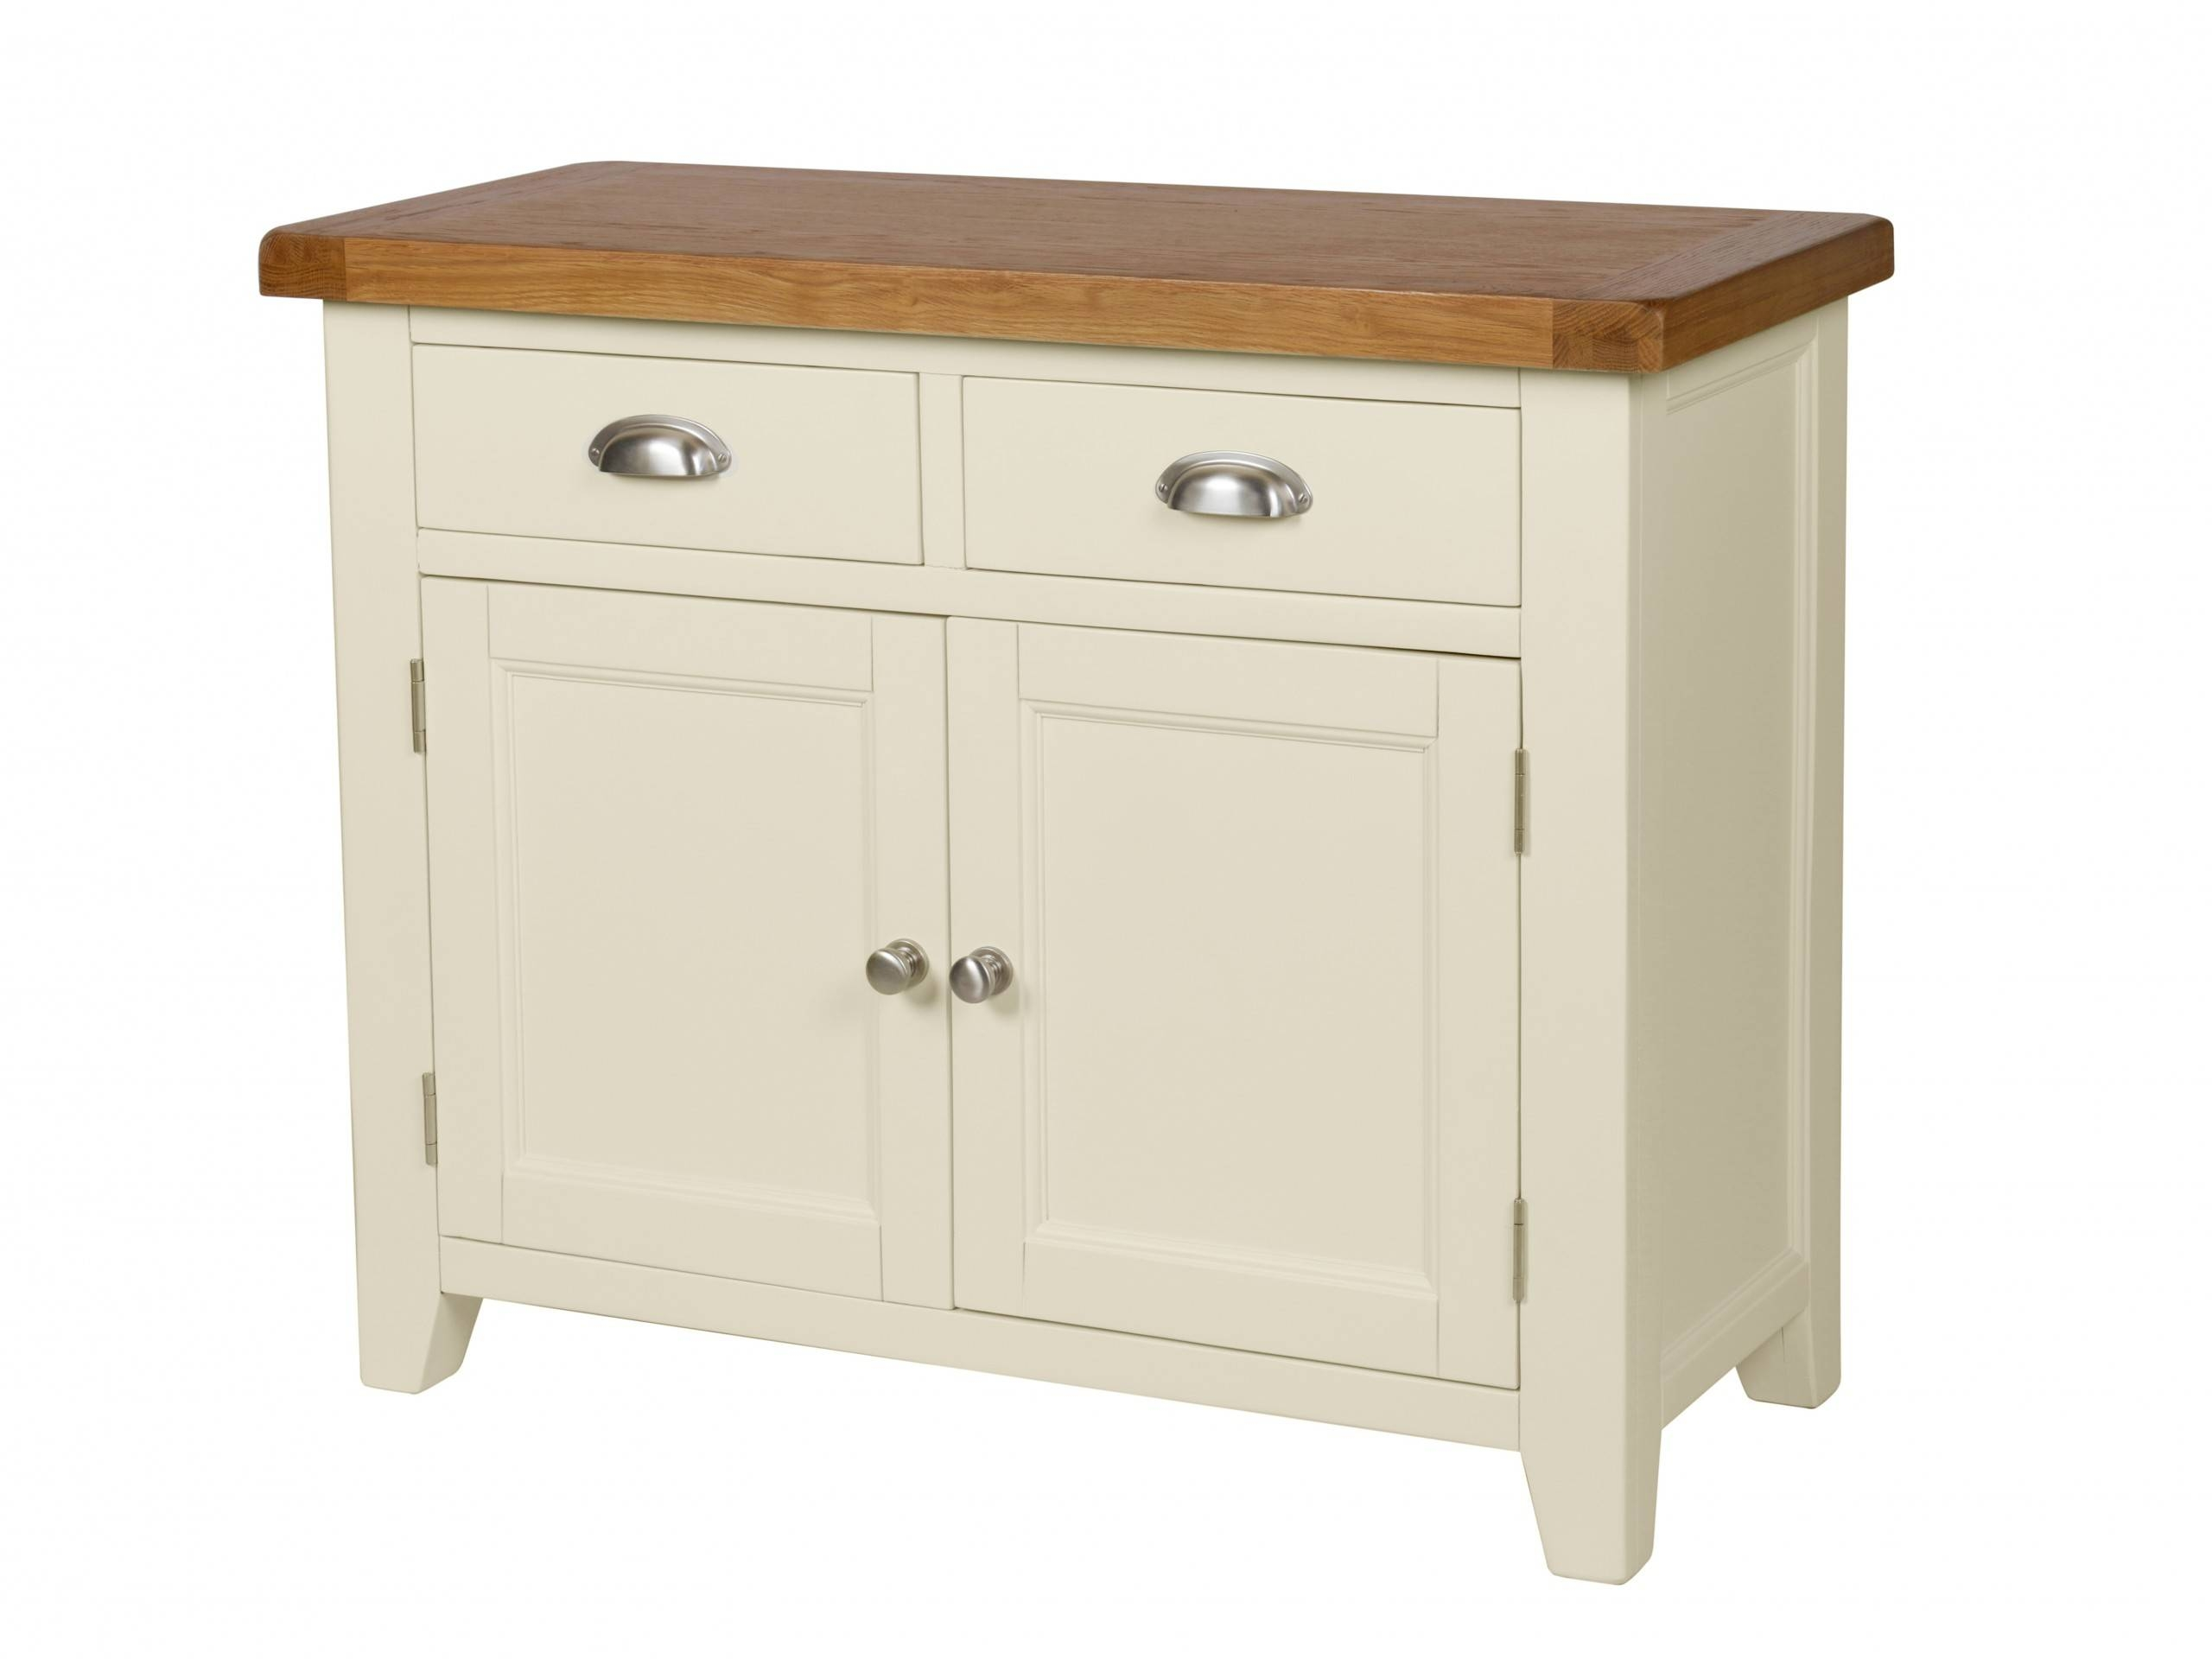 Country Cottage 100Cm Cream Painted Oak Sideboard inside Cream Sideboards (Image 5 of 30)